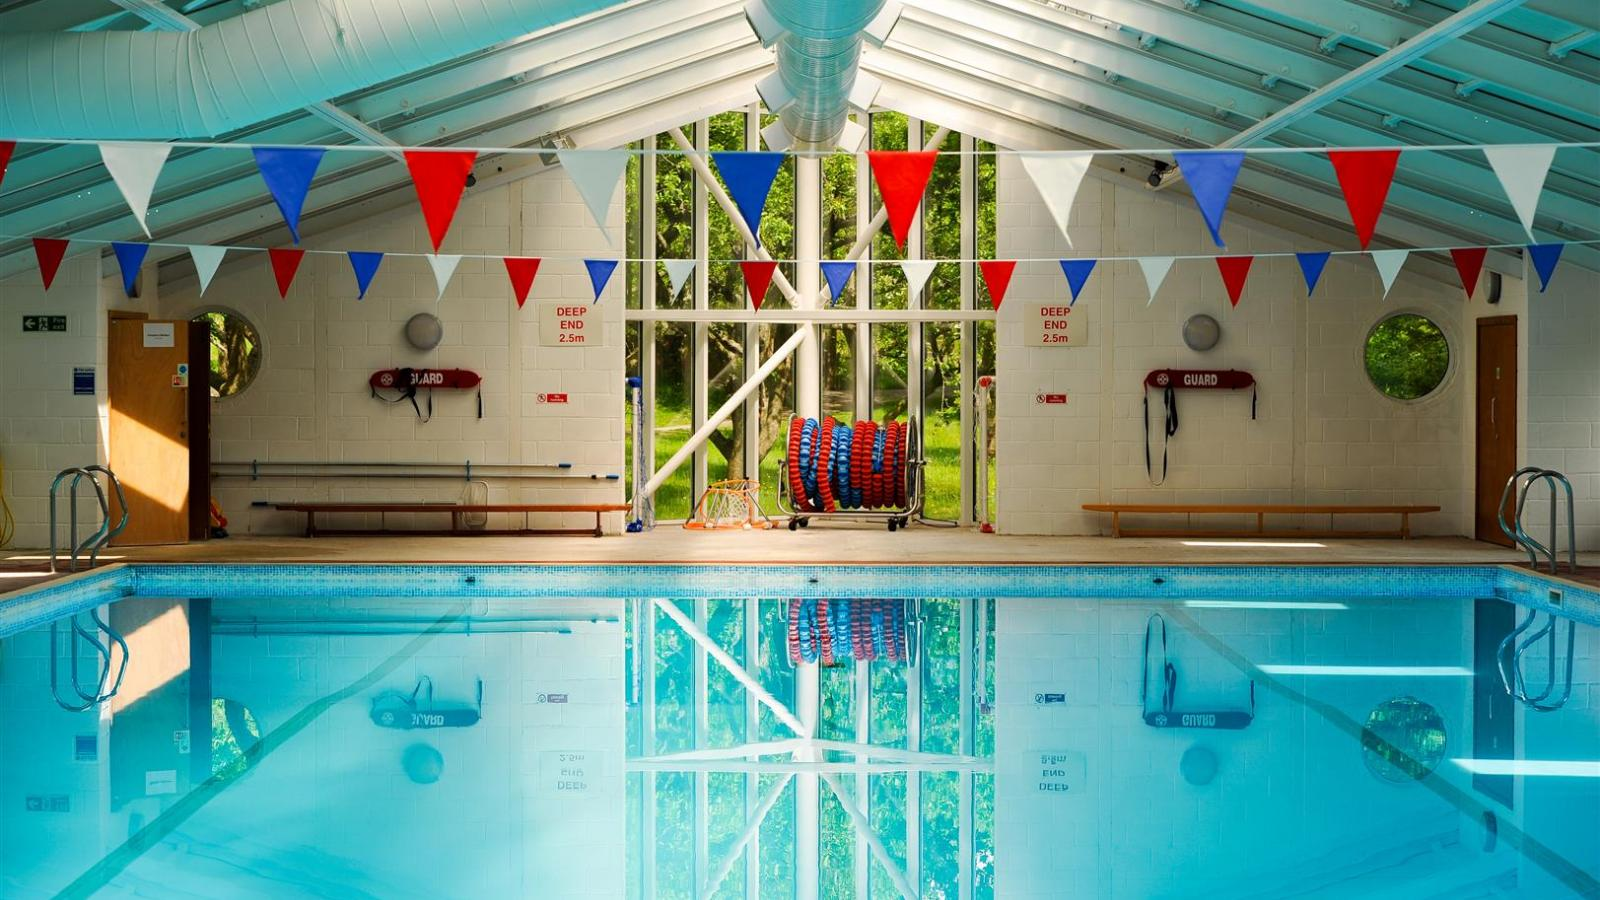 Bedales swimming pool